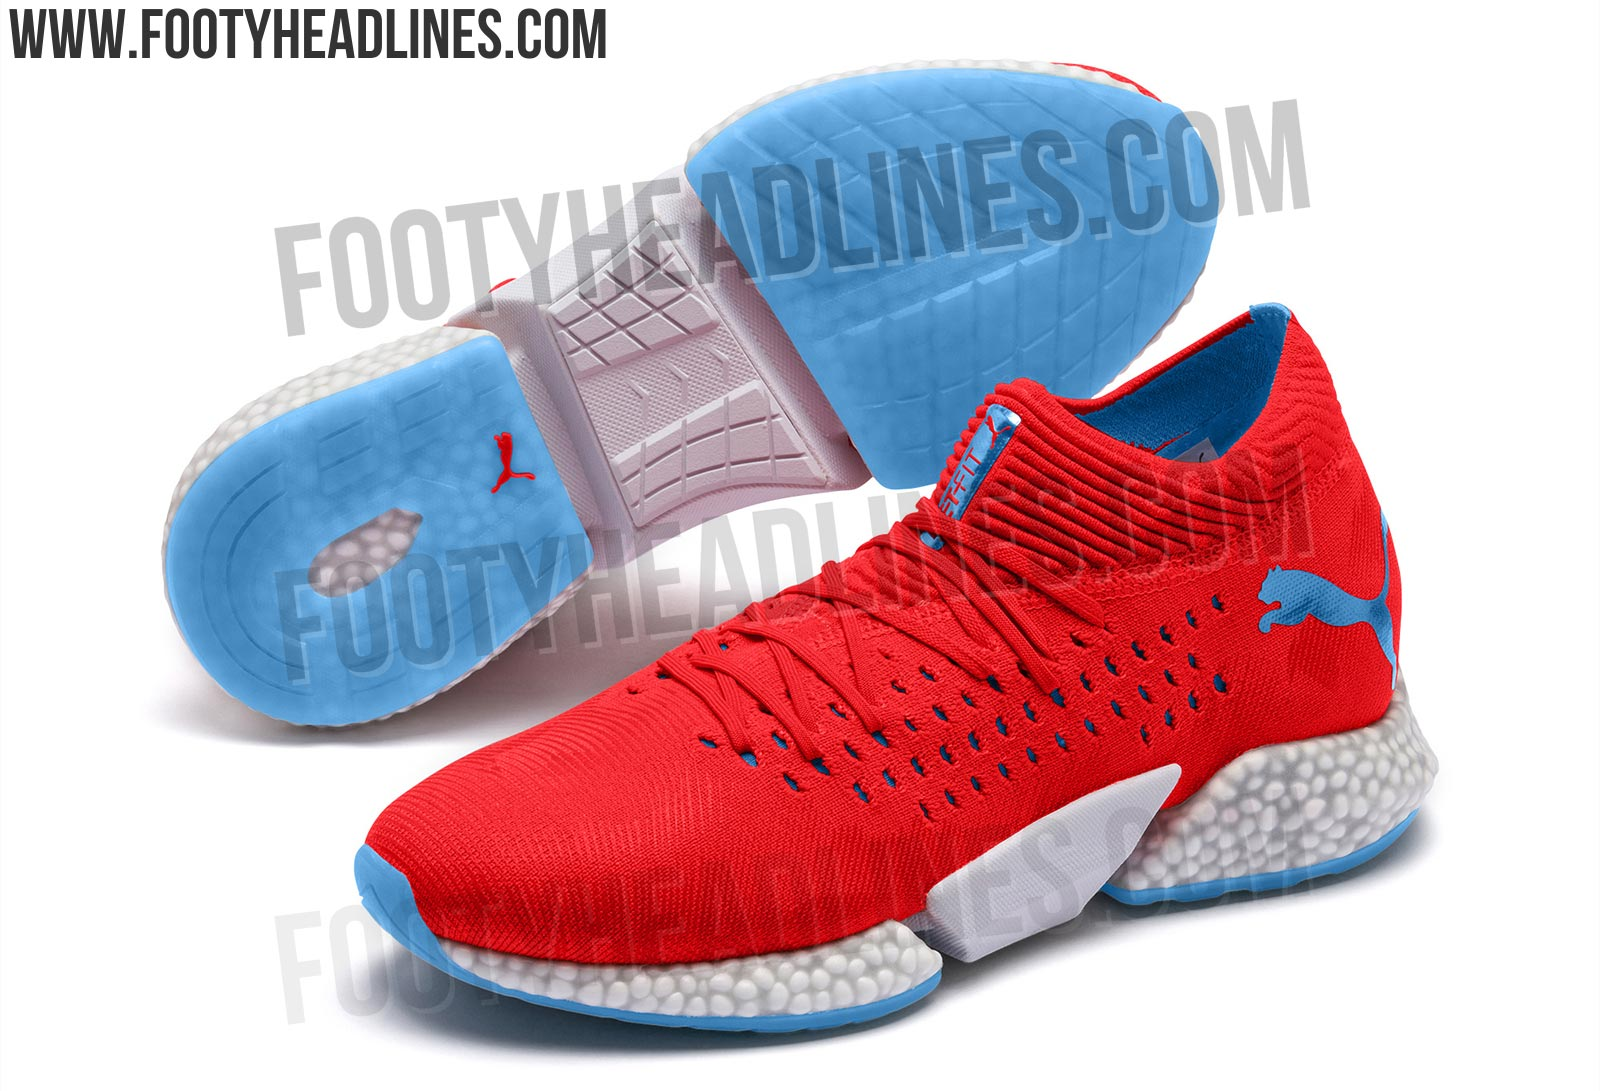 0a89ede20 Adidas Boost Copy? Next-Gen Puma Future Netfit 2019 Sneakers Leaked ...